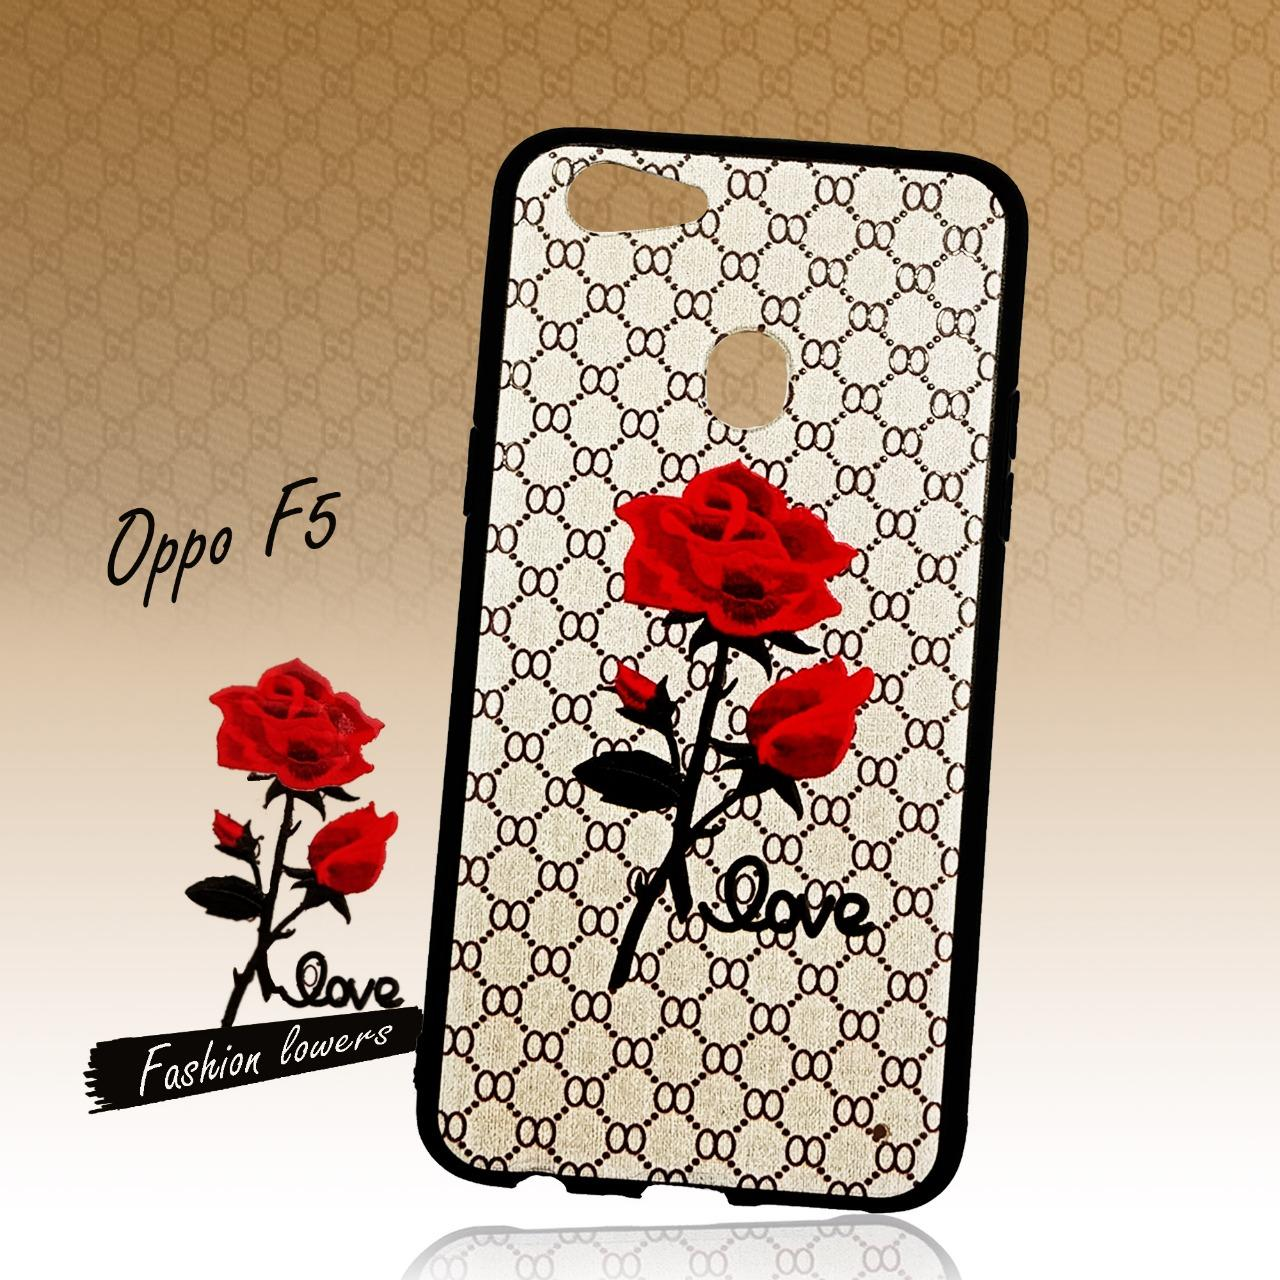 Softcase Fashion Phone Case New Oppo F5